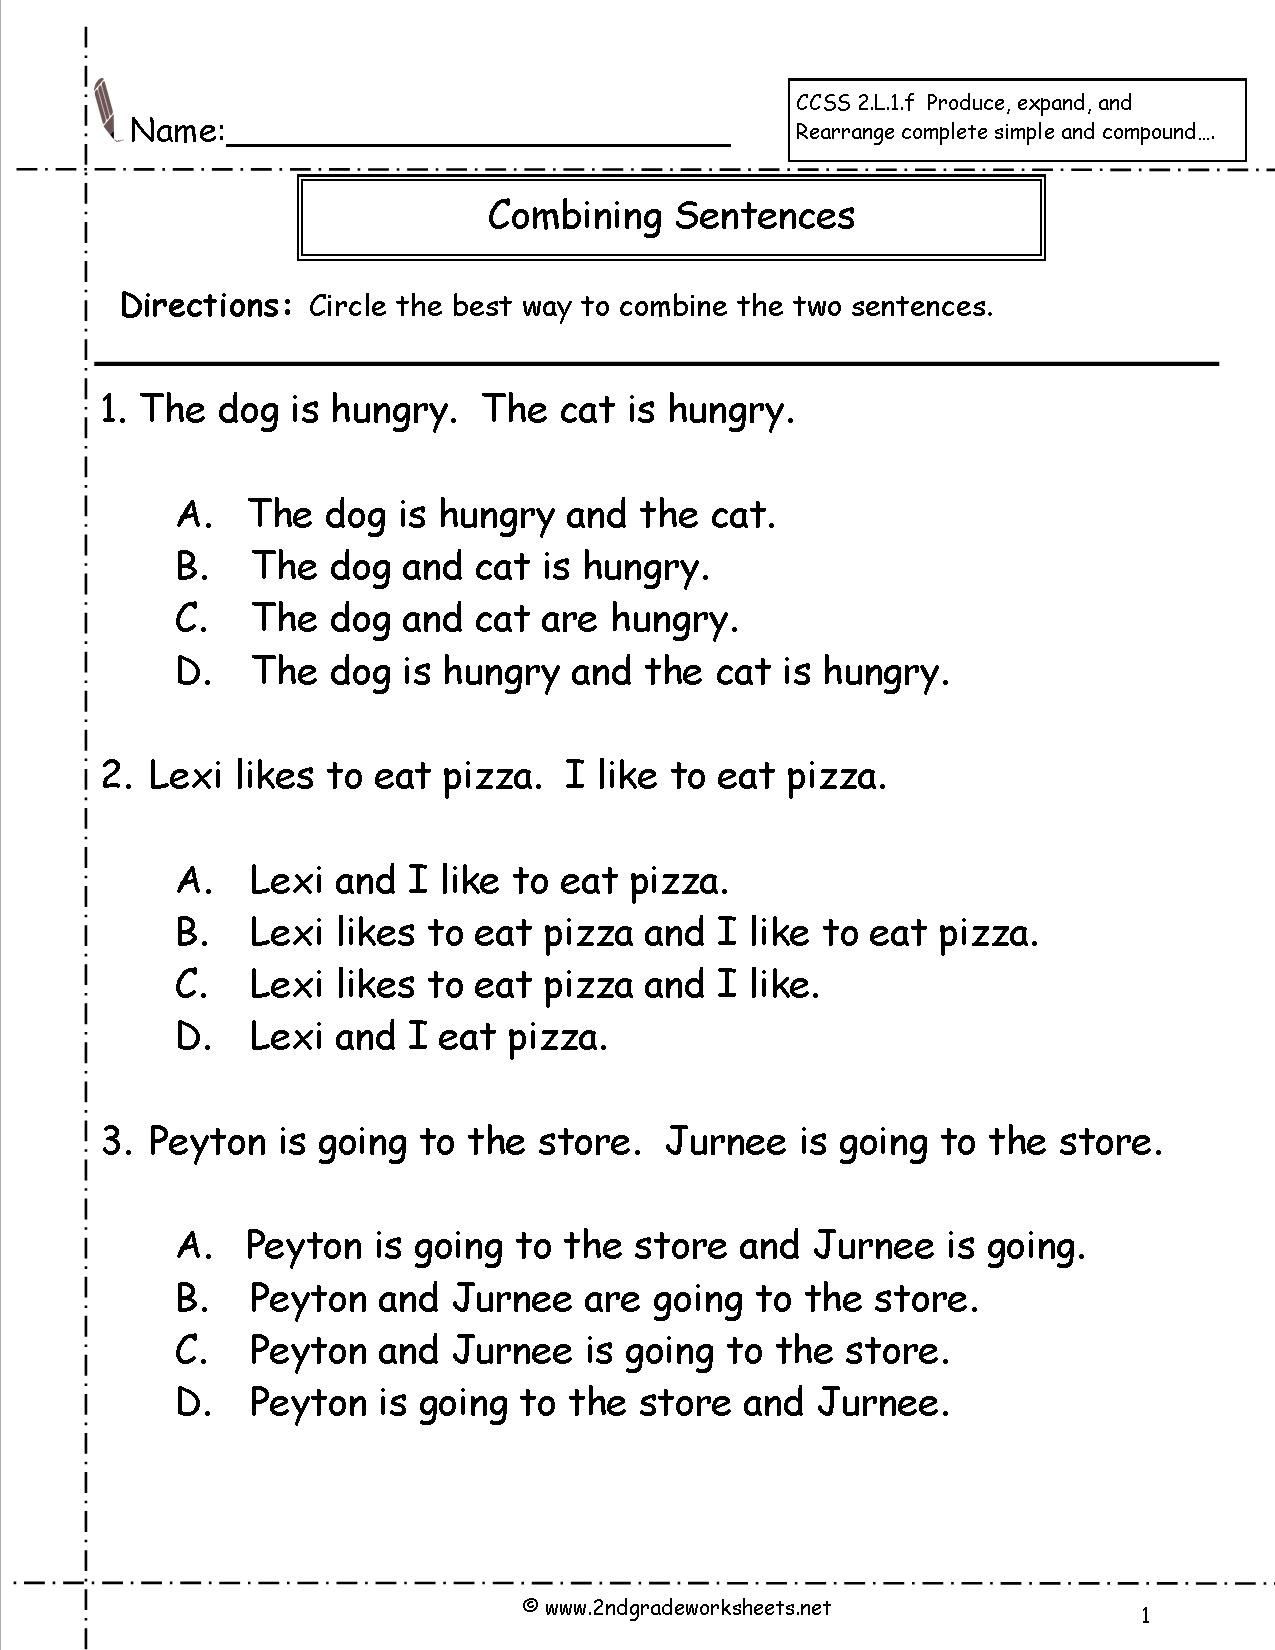 Complex Sentence Worksheets 4th Grade Bining Sentences Worksheet with Images